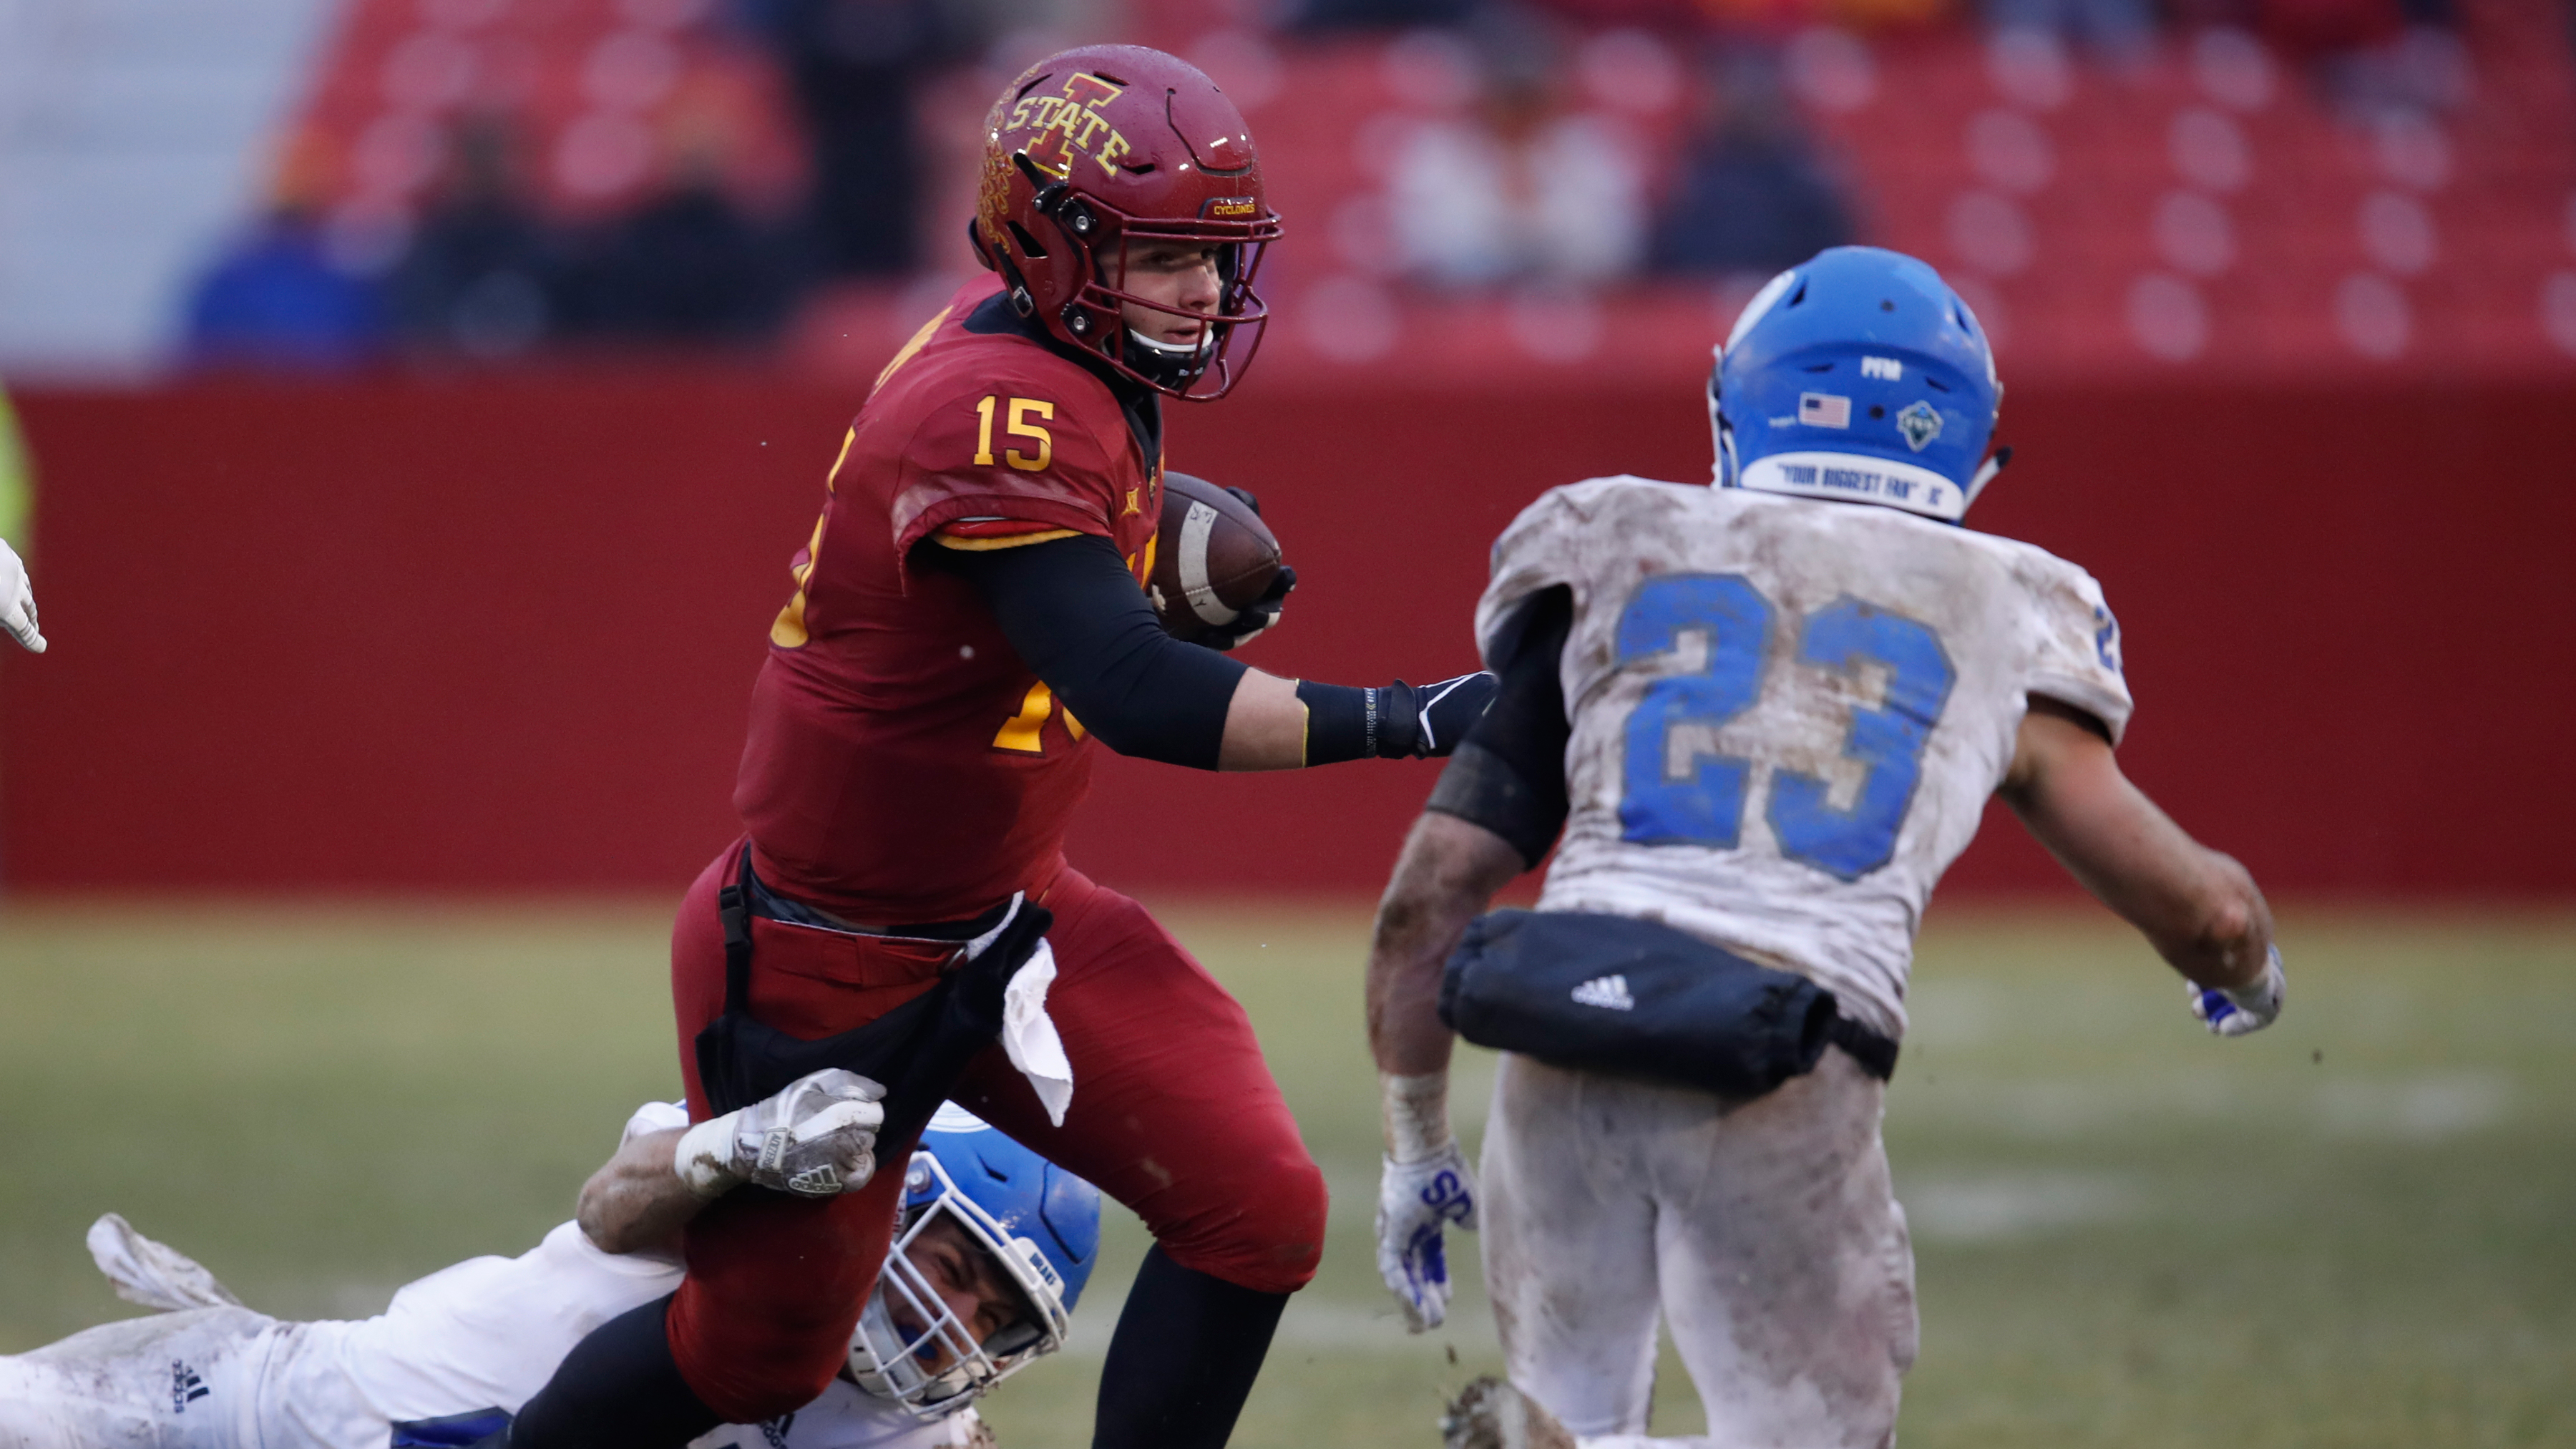 low cost 13d59 cb42c Iowa State football: Cyclones escape vs. Drake in three ...